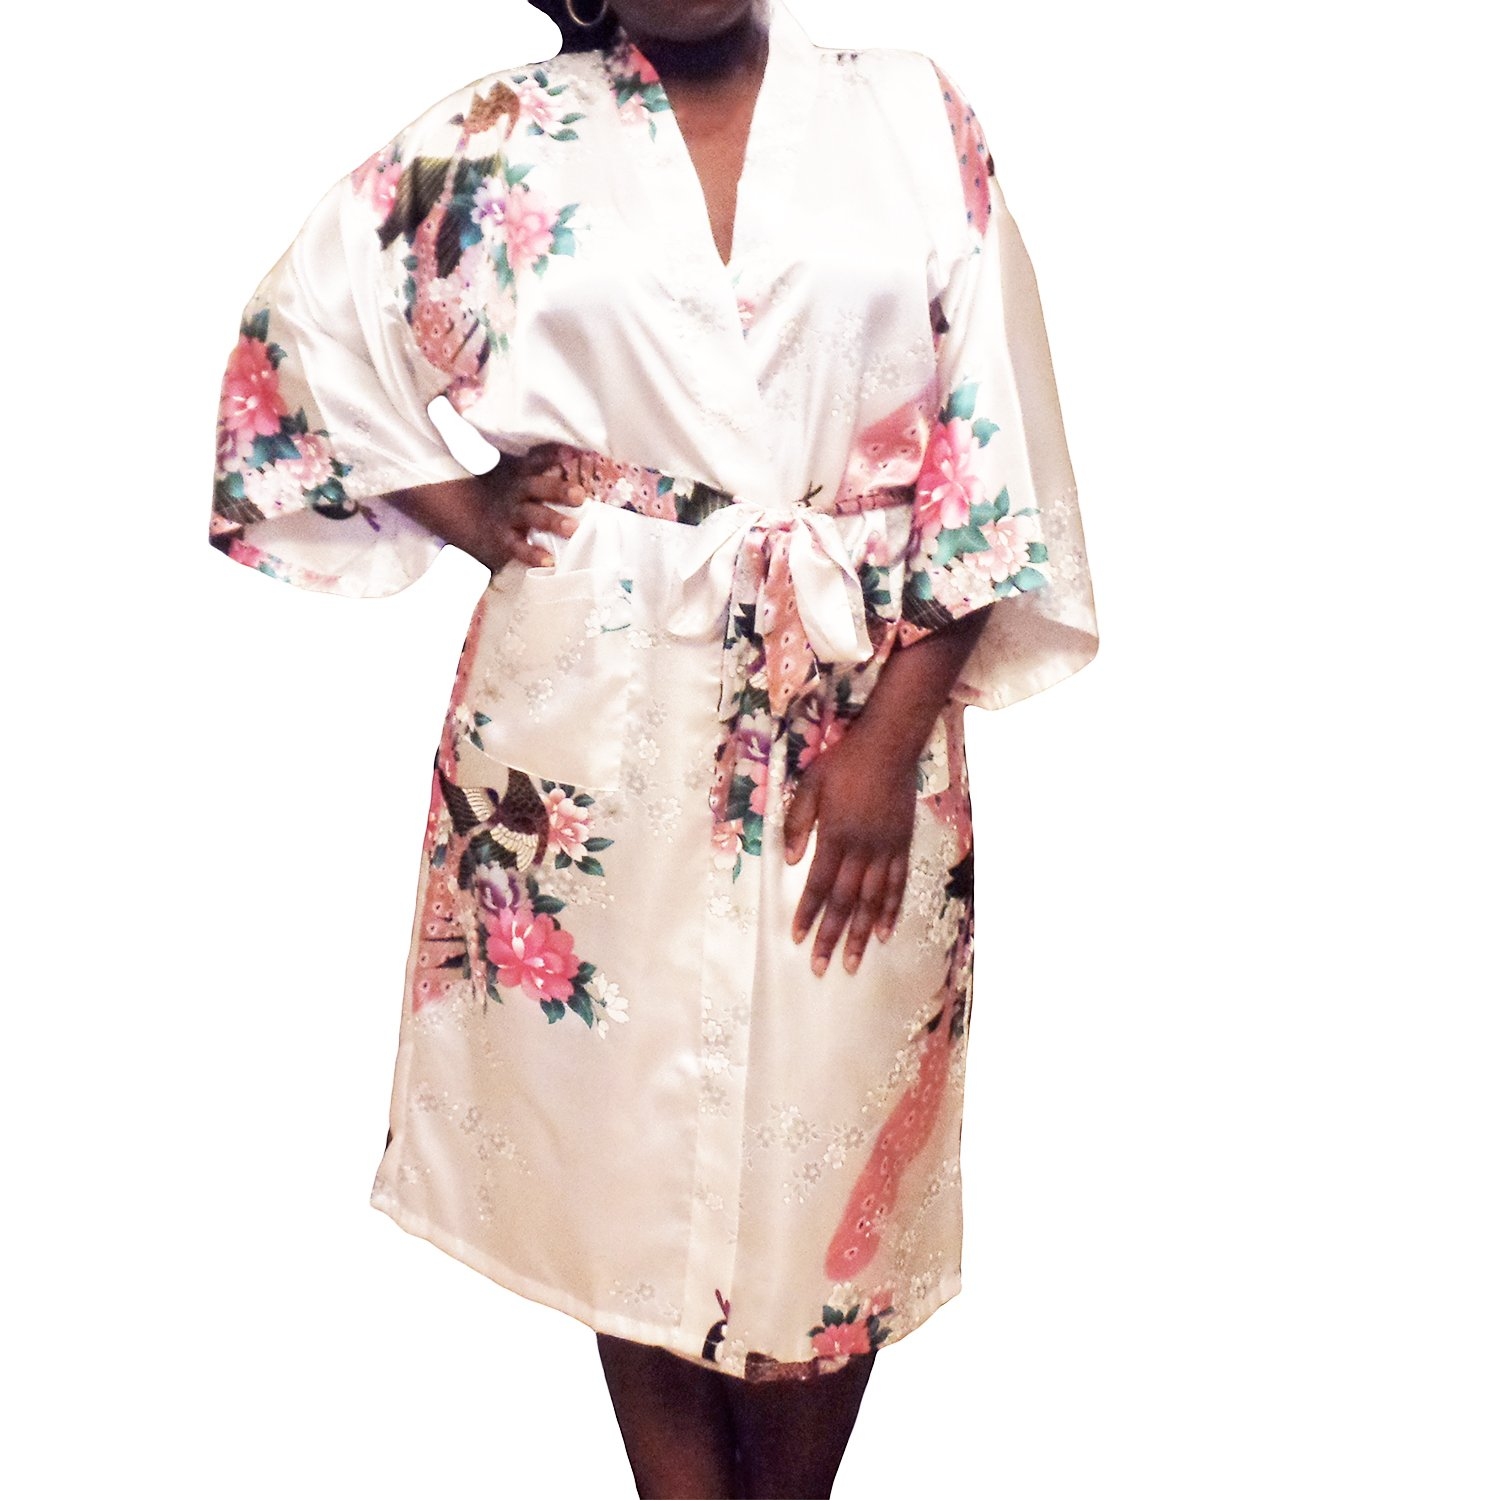 Gifts Are Blue Floral Satin Womens Plus Size Robes, Lightweight, Sizes 20-38, Knee Length (White, 6XL / 28W - 38W)